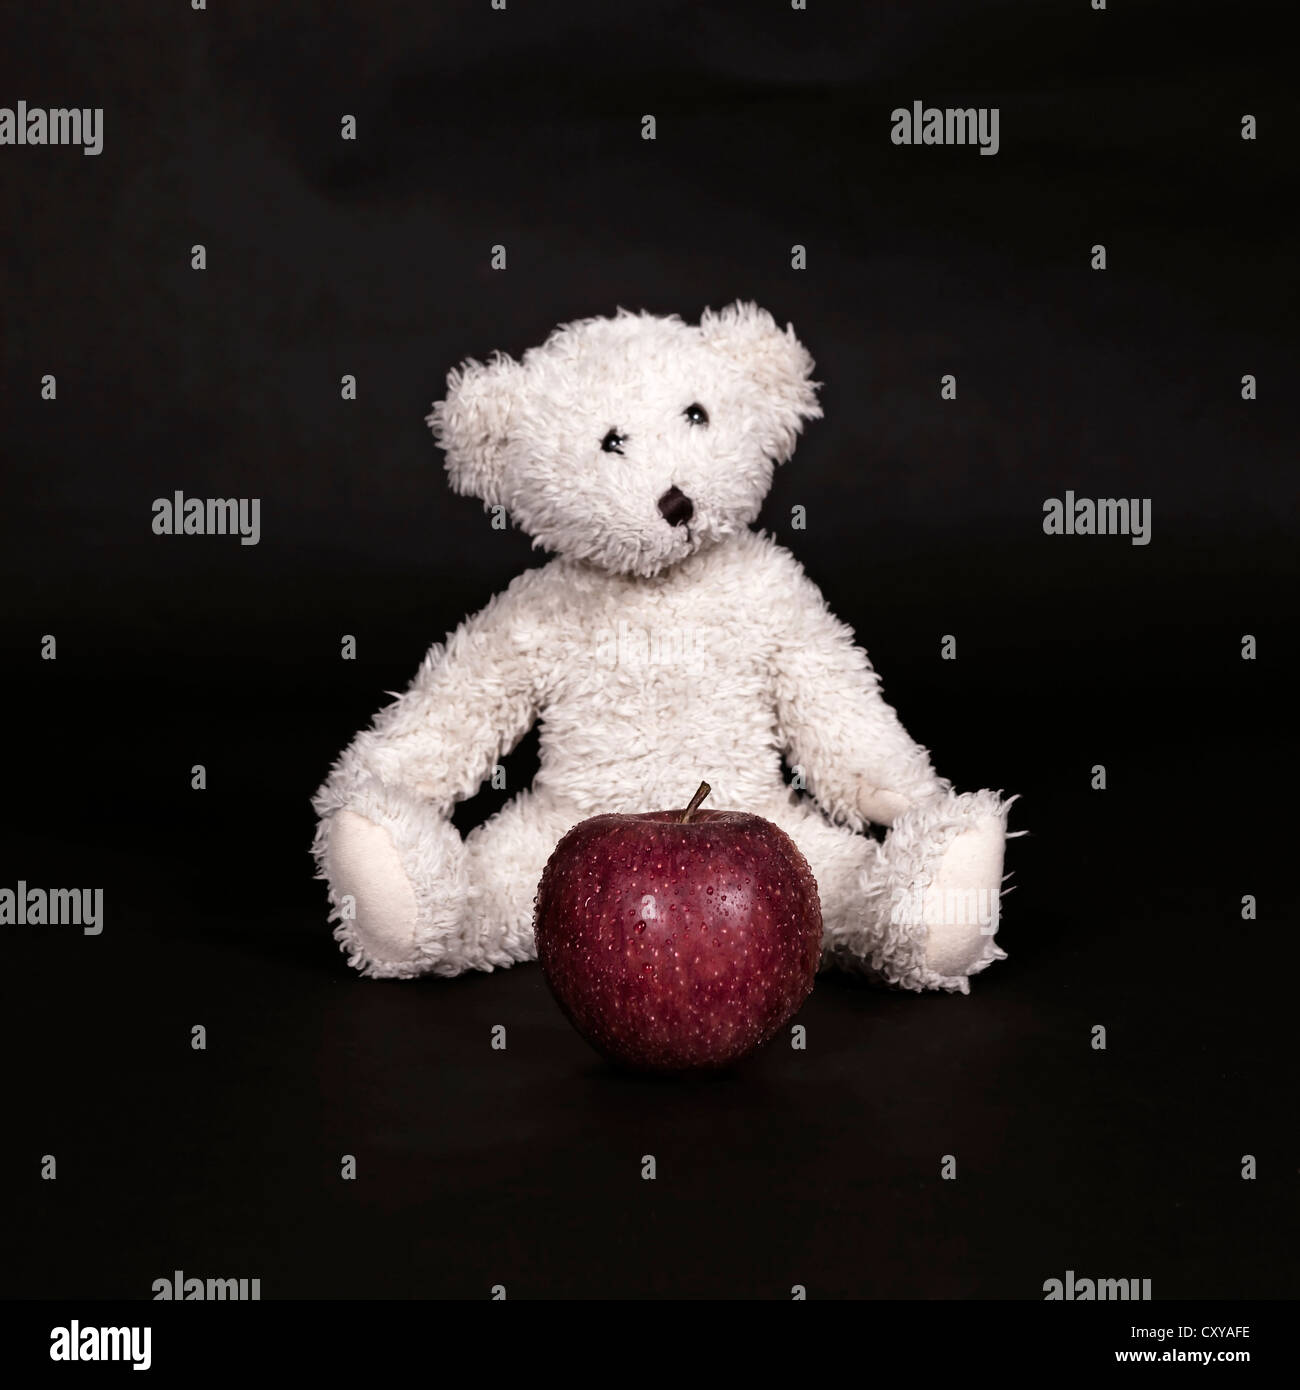 a white teddy bear and a red apple - Stock Image